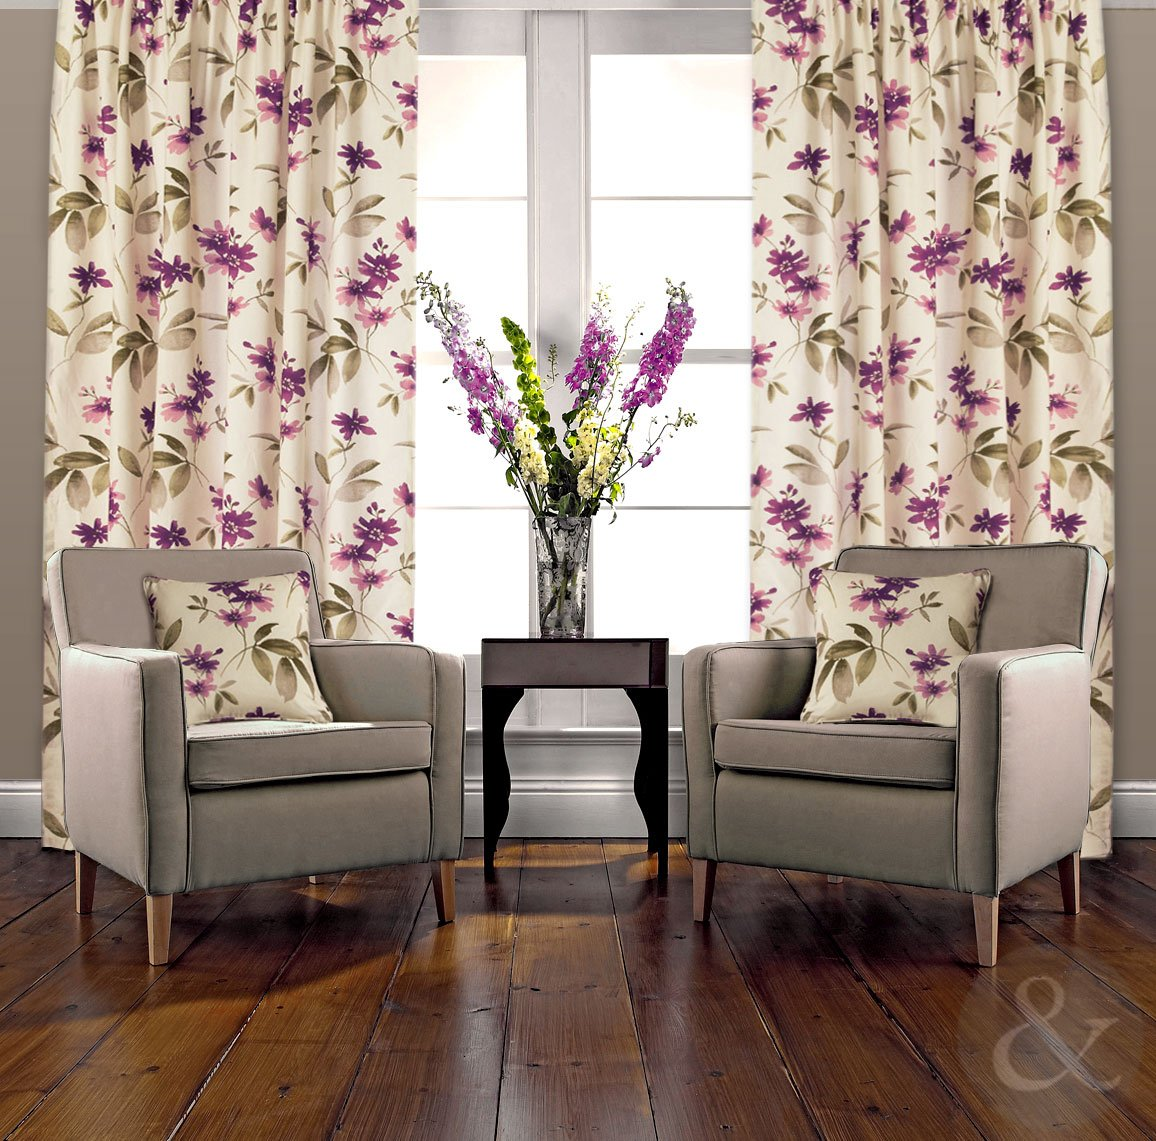 ORIENTAL CURTAINS Floral Heavy Half Panama Cotton Pencil Pleat Lined Curtain  Aubergine ( Purple Damson Cream ) 66x90 Inches ( Extra Long Drop Huge ): ...